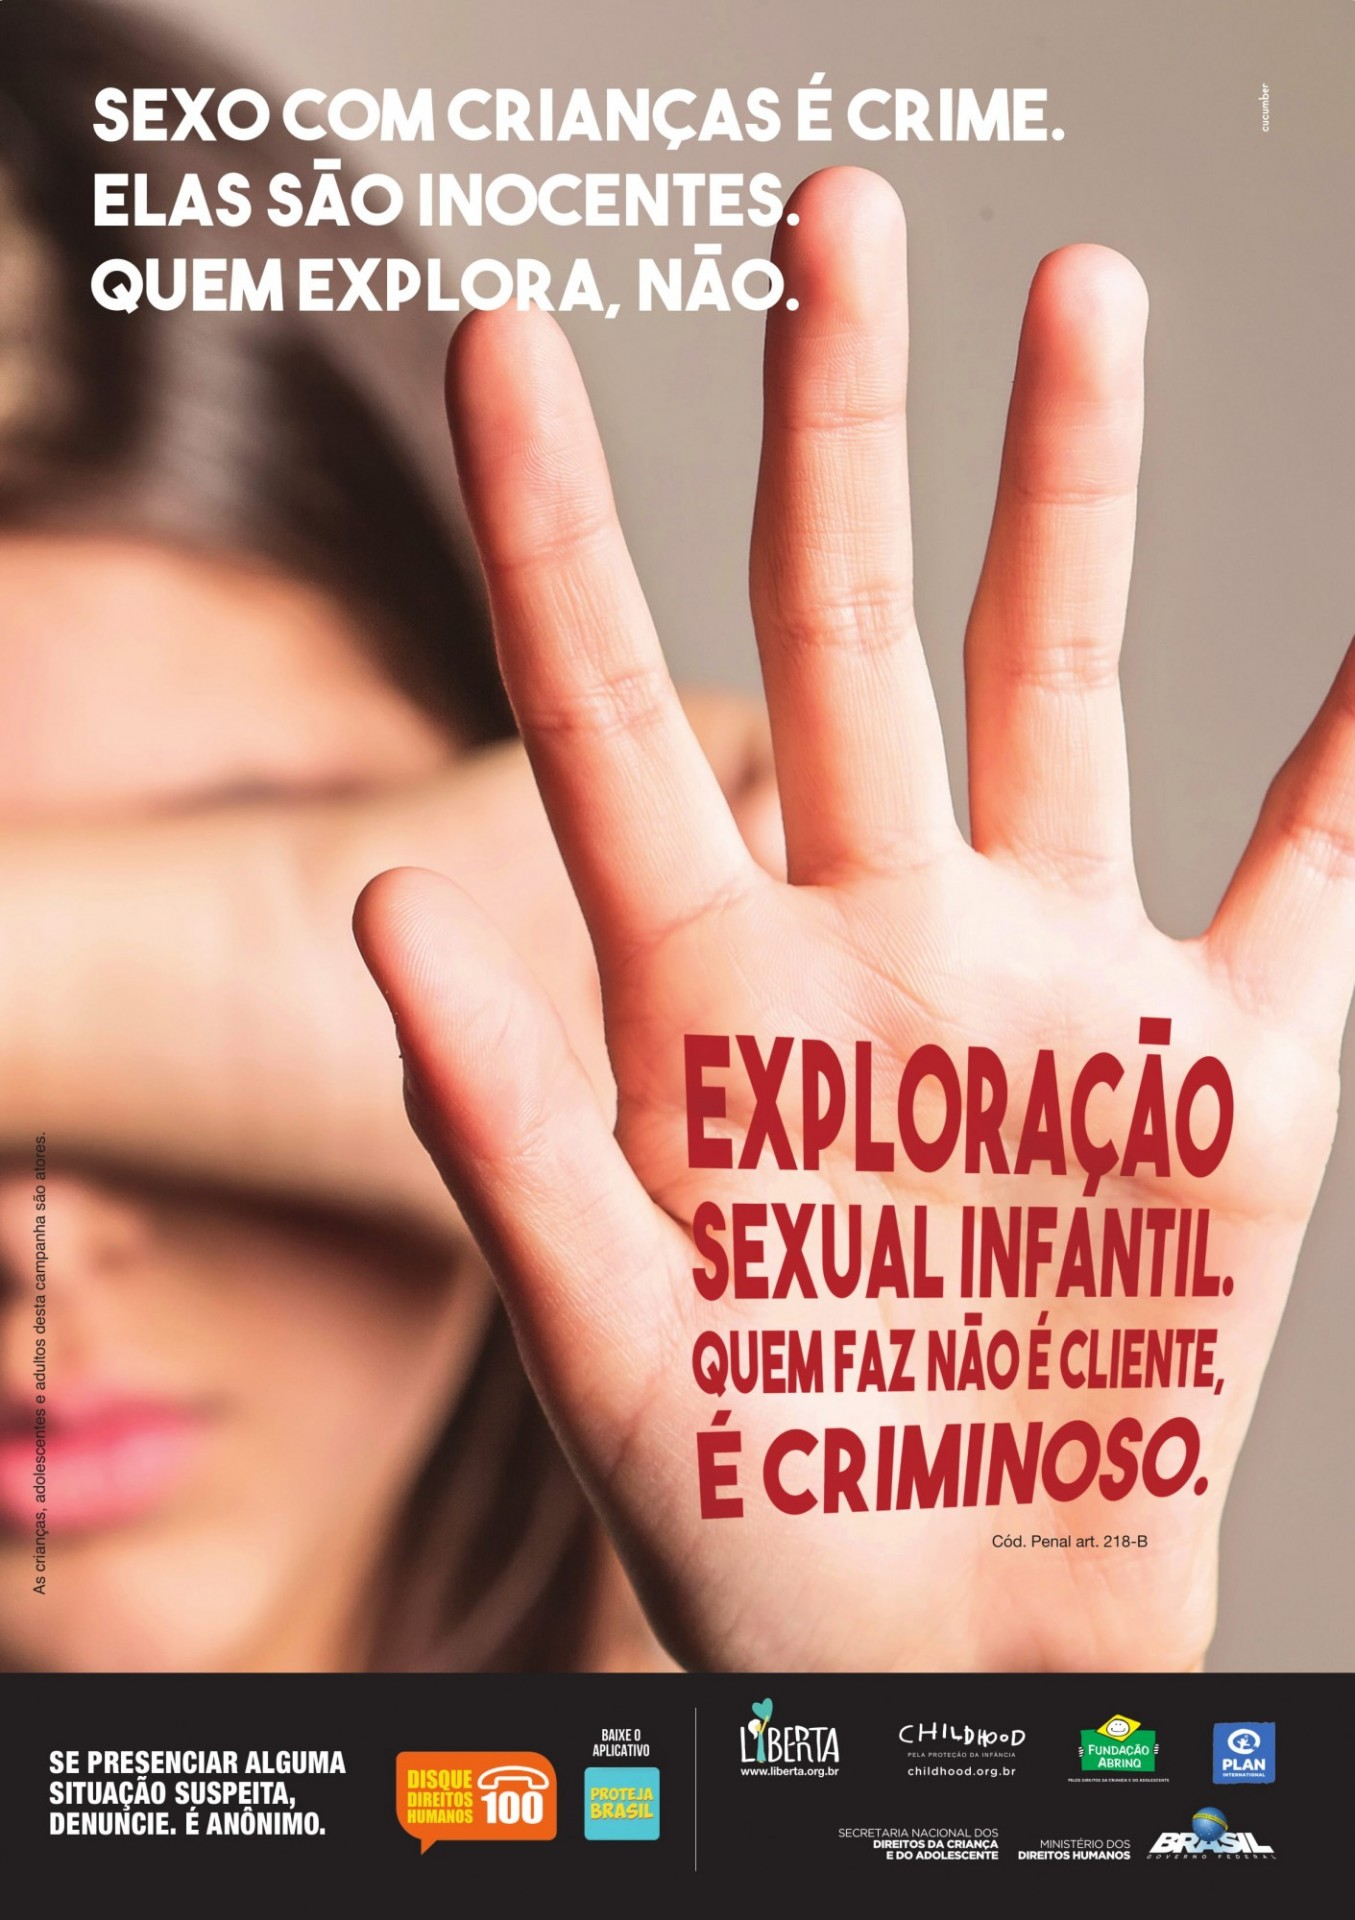 Liberta Institute's advertising campaign to fight the sexual exploitation of children